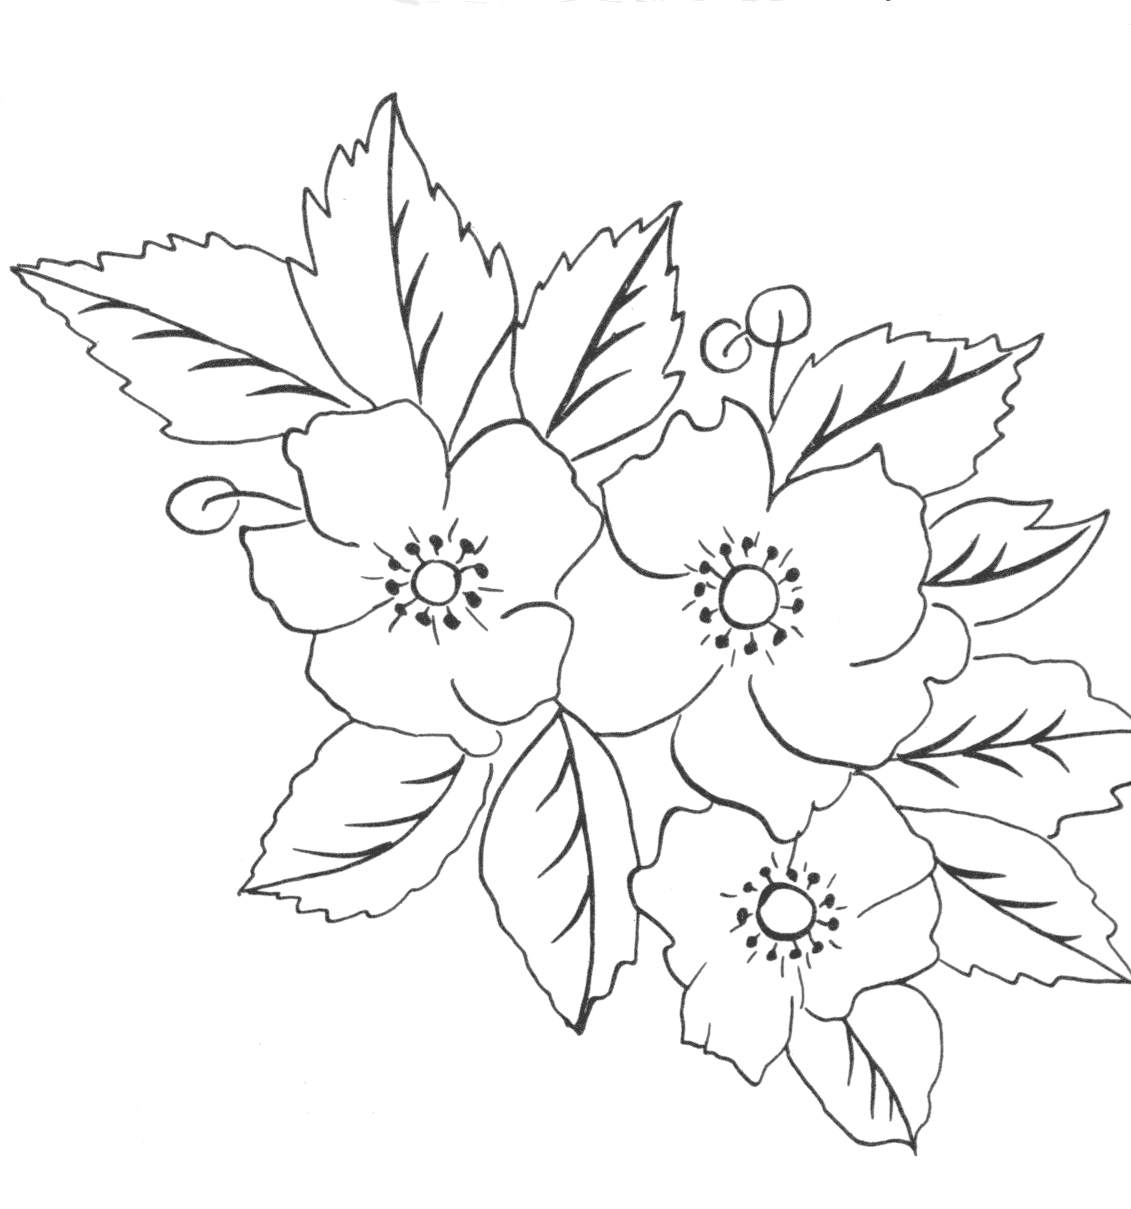 Lotus Blossom Coloring Page